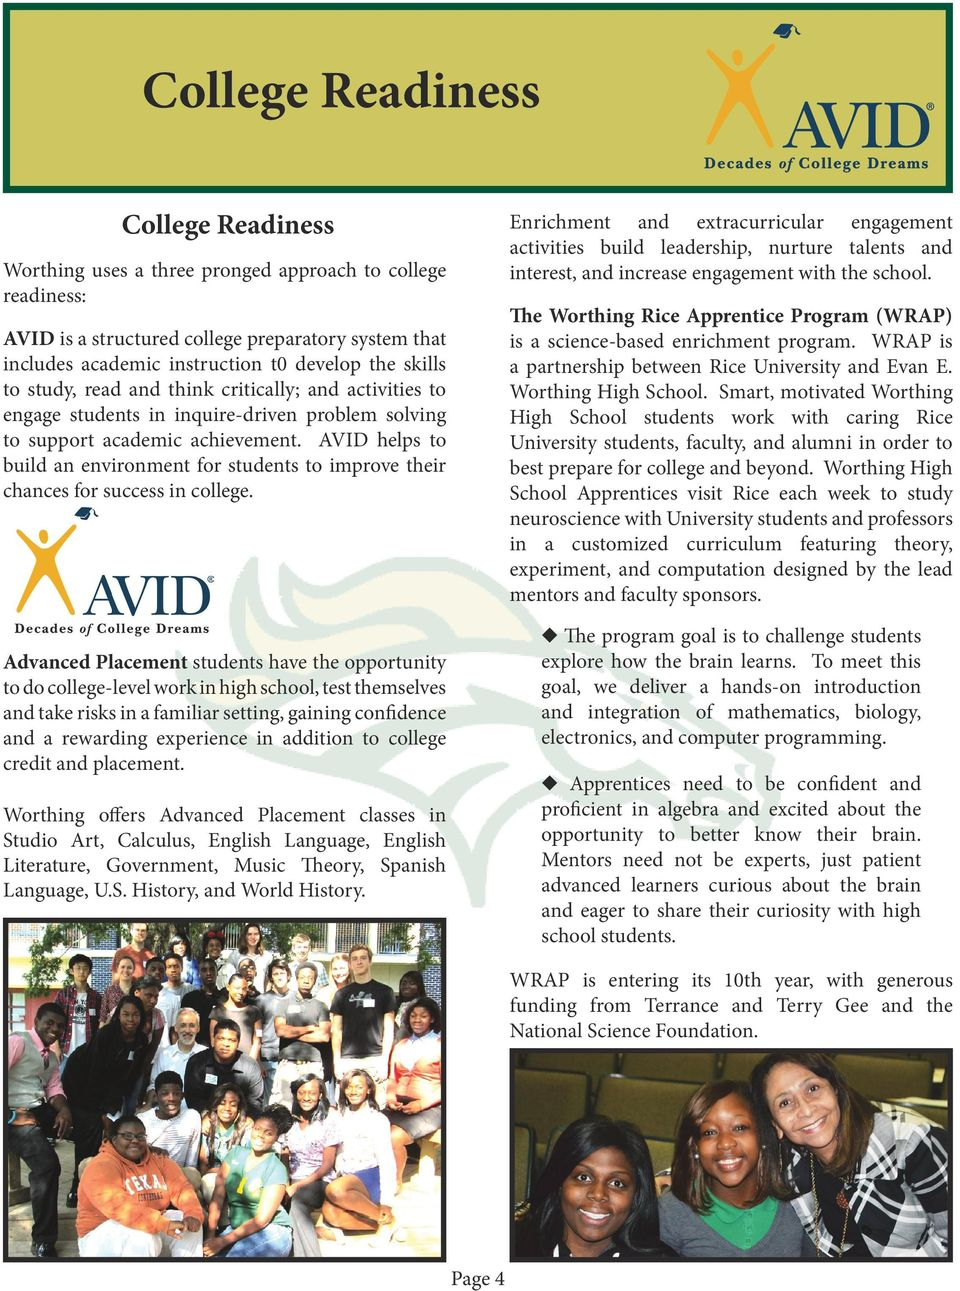 AVID helps to build an environment for students to improve their chances for success in college.